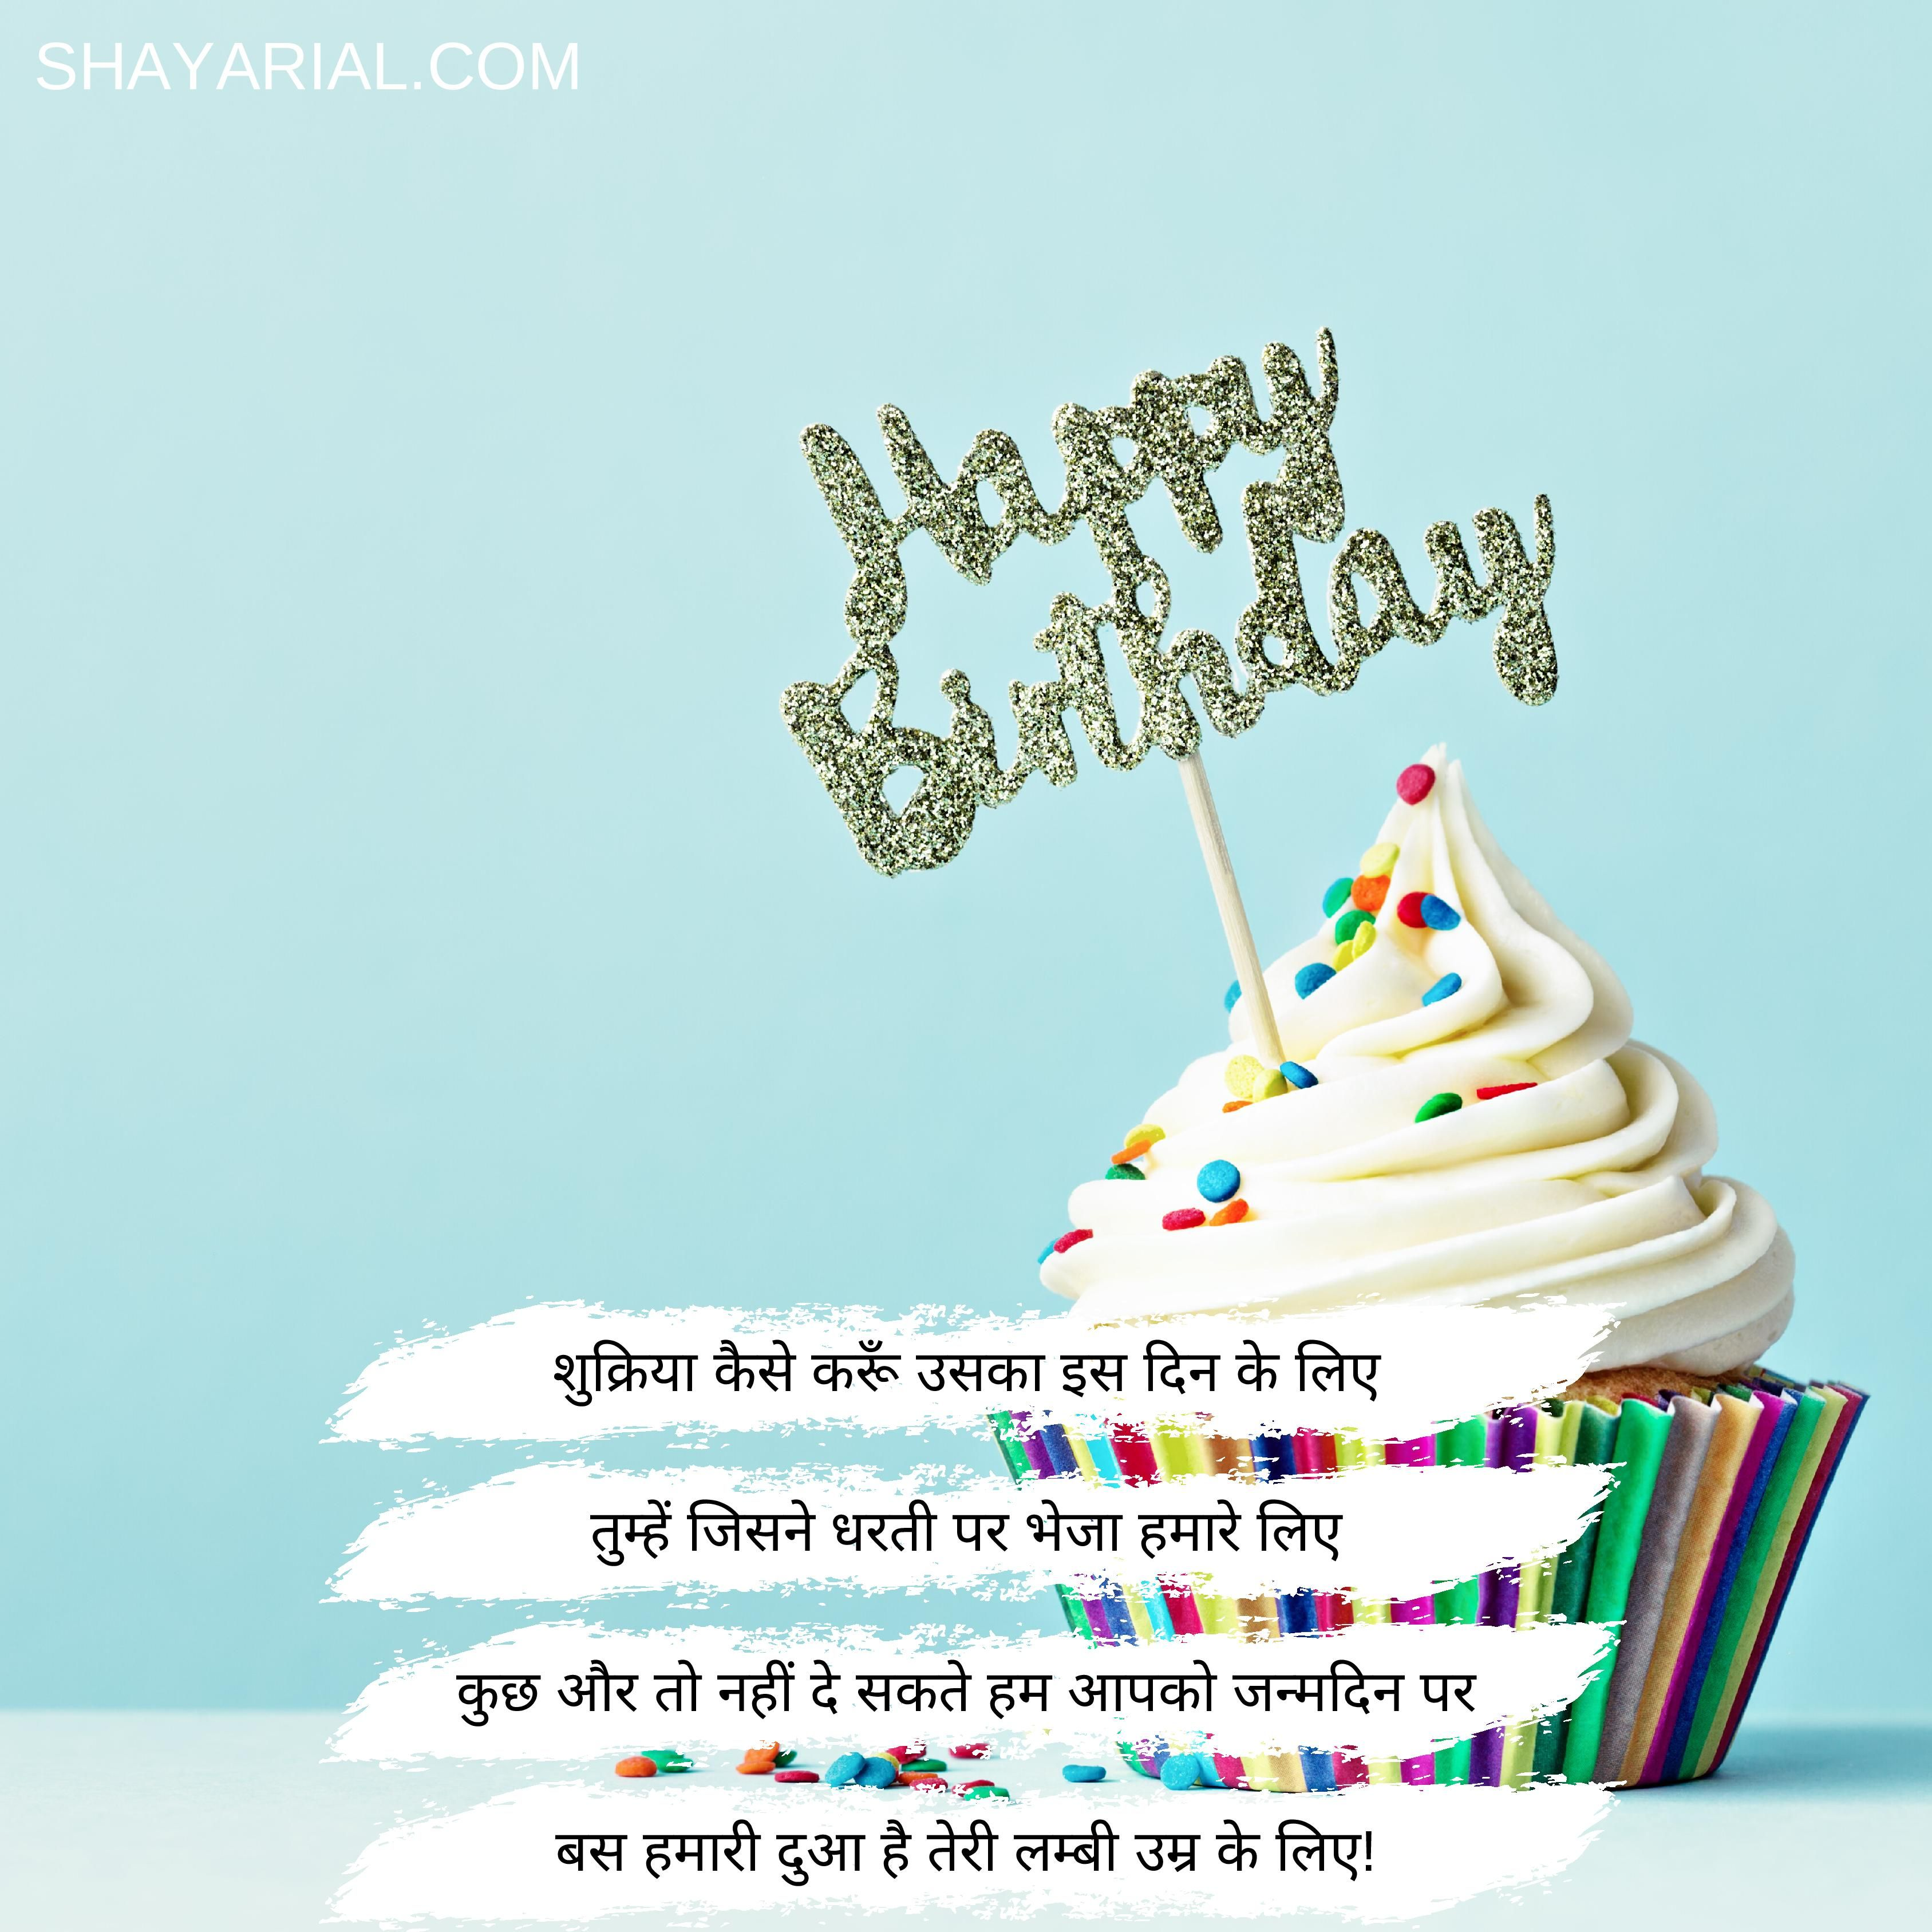 Birthday Wishes In Hindi 2020 in 2020 Birthday wishes